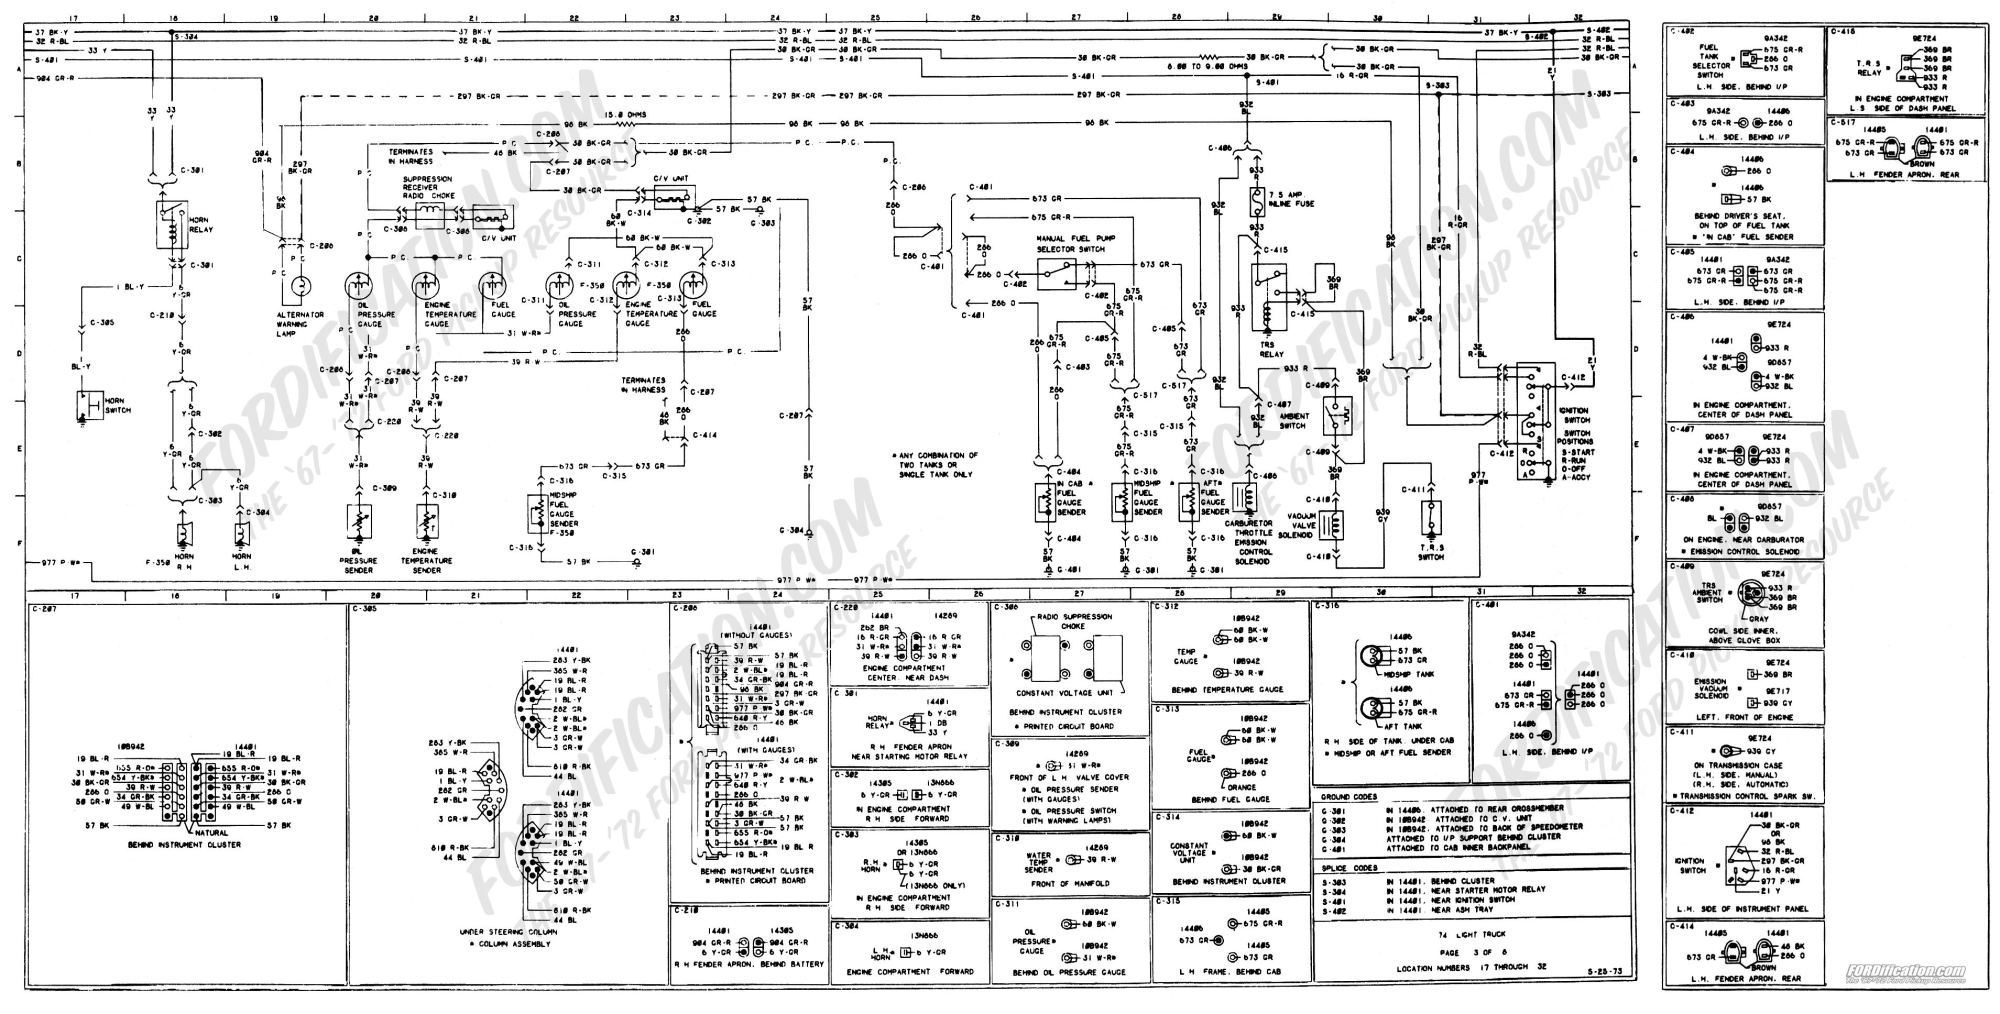 hight resolution of 1973 ford f100 wiring diagram wiring diagram co1 1979 harley sportster wiring diagram 74 f100 help